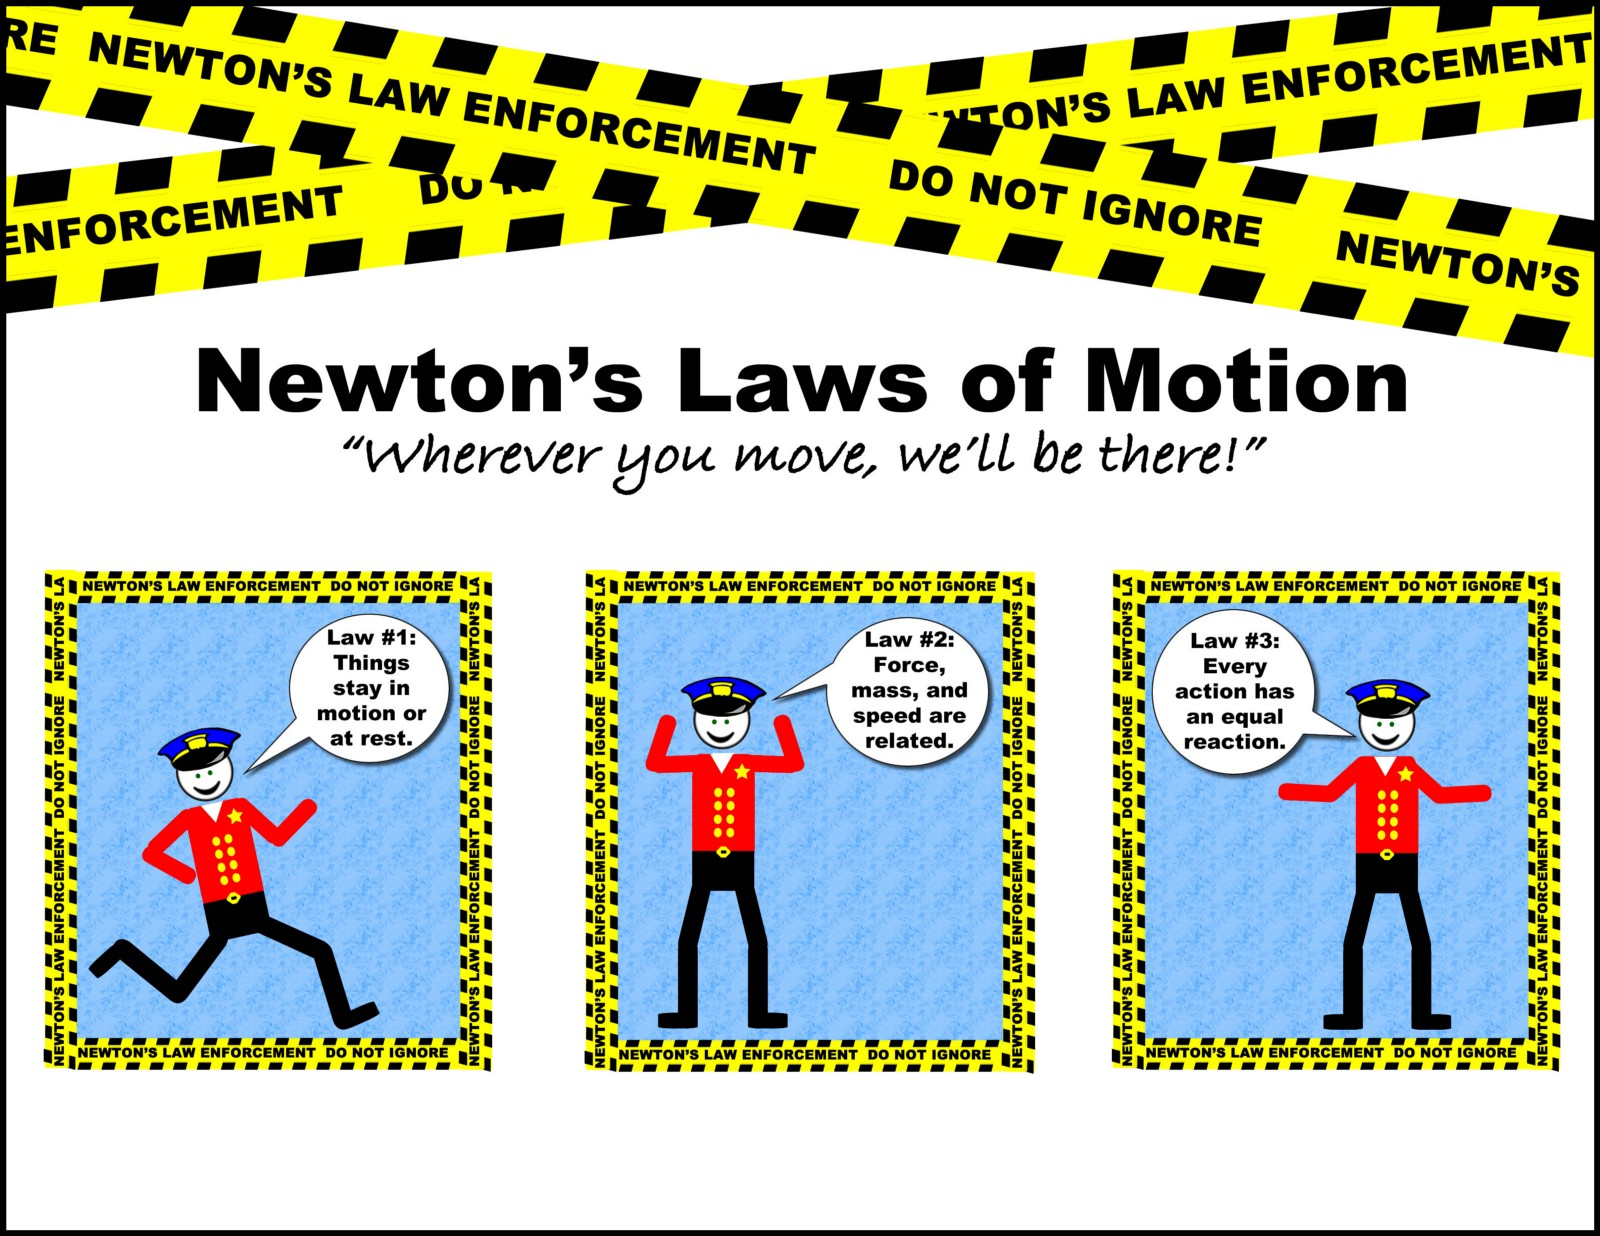 the concept of blockchain explained from starting with reference to newtons laws of motion